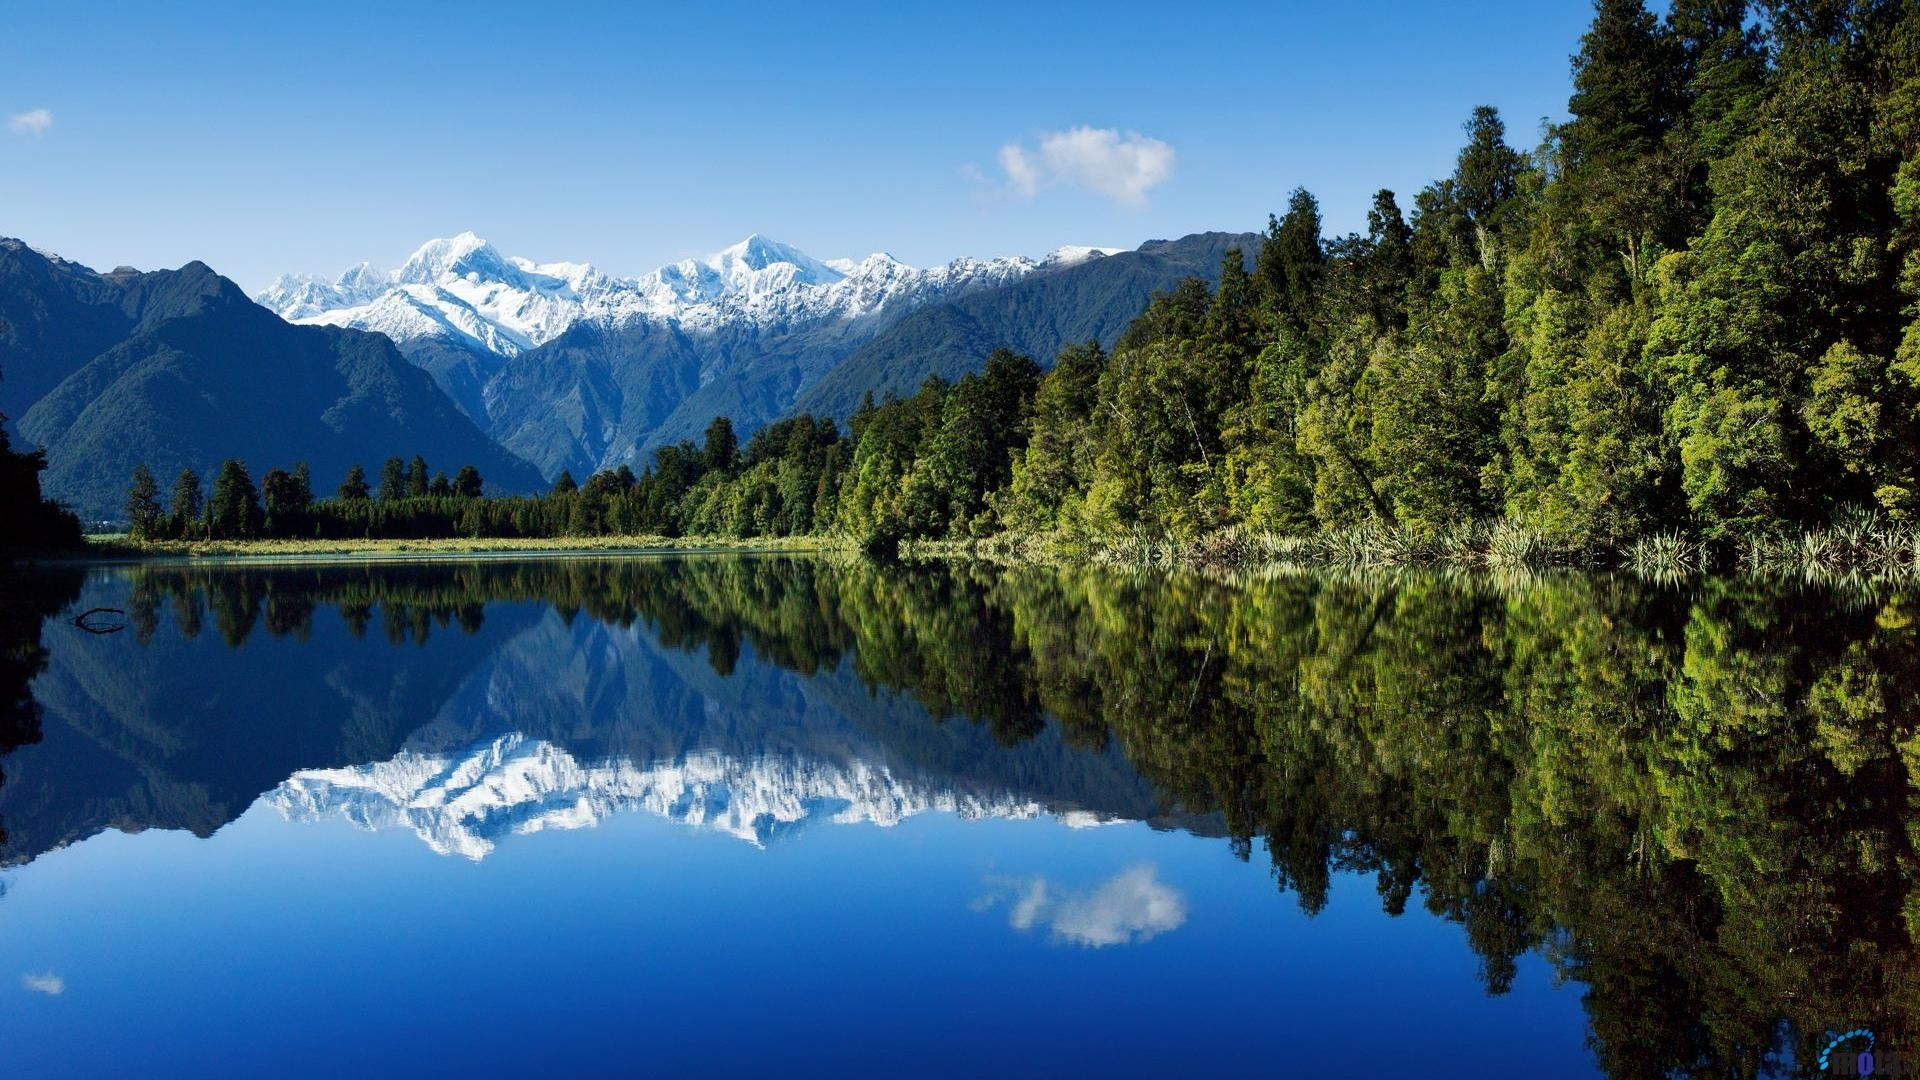 ultra new zealand fhdq wallpapers for pc & mac, tablet, laptop, mobile